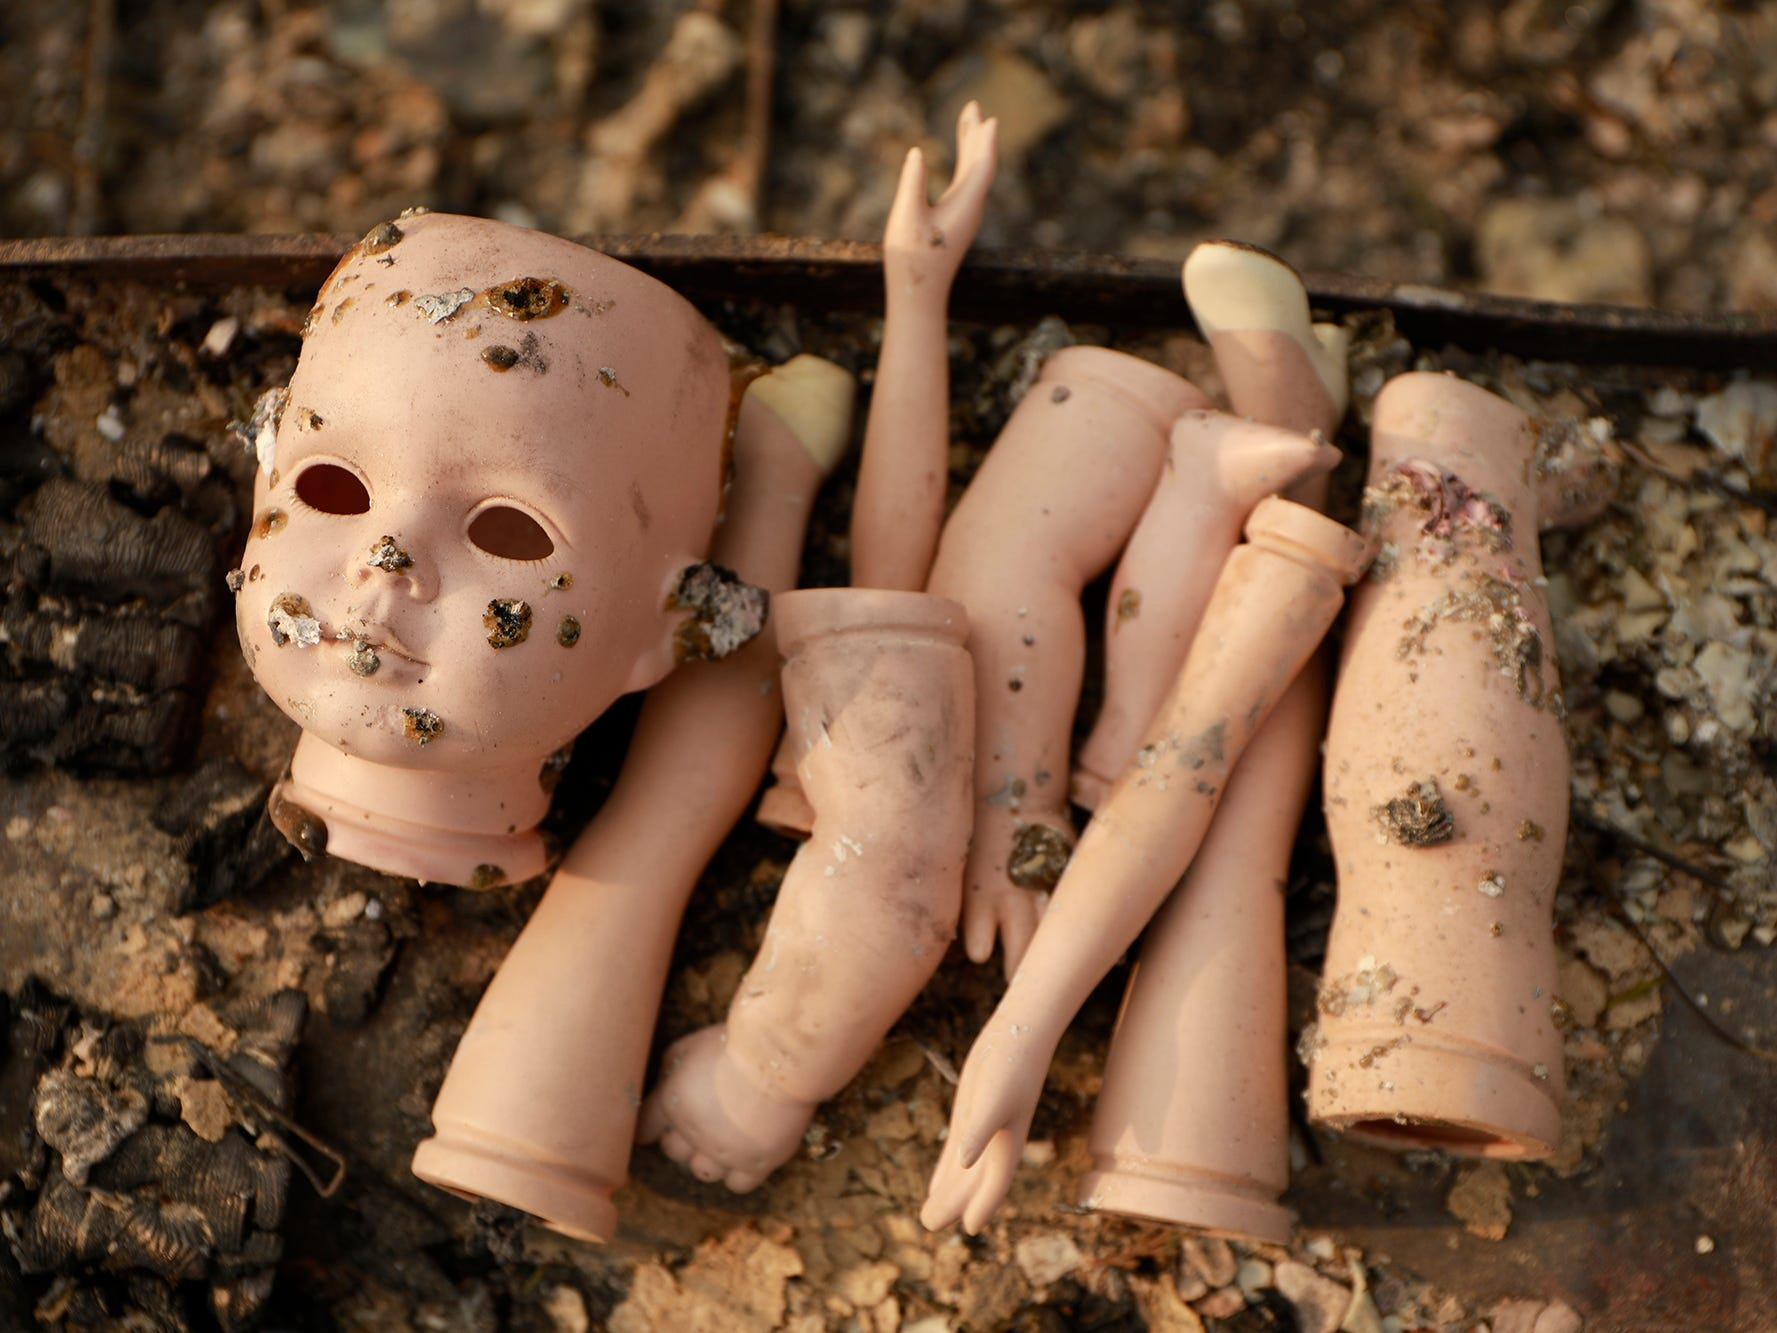 Antique doll parts remain among the ashes of a home on Keswick Rd. near Tanstaafl Lane lost to the Carr fire in Keswick, Calif., Saturday, August 26, 2018.